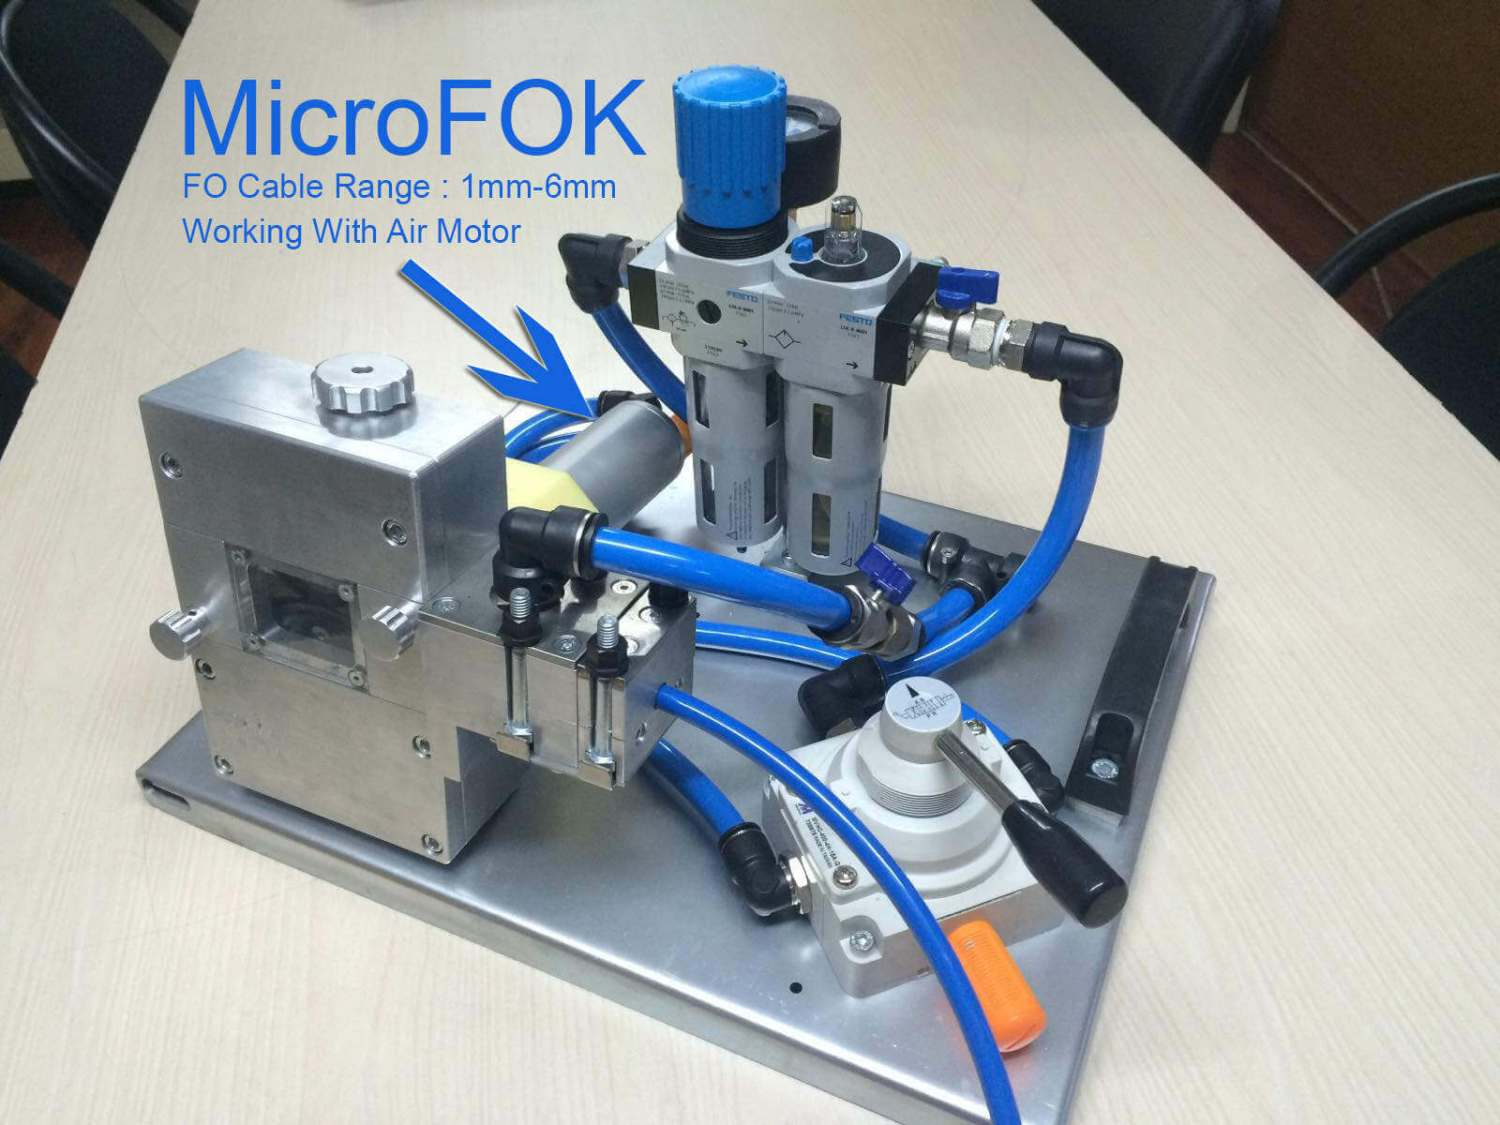 micro fiber optic cable blowing machines micro fiber optic cable blowing machines Micro Fiber Optic Cable Blowing Machines Cable Blowing Machines MicroFOK